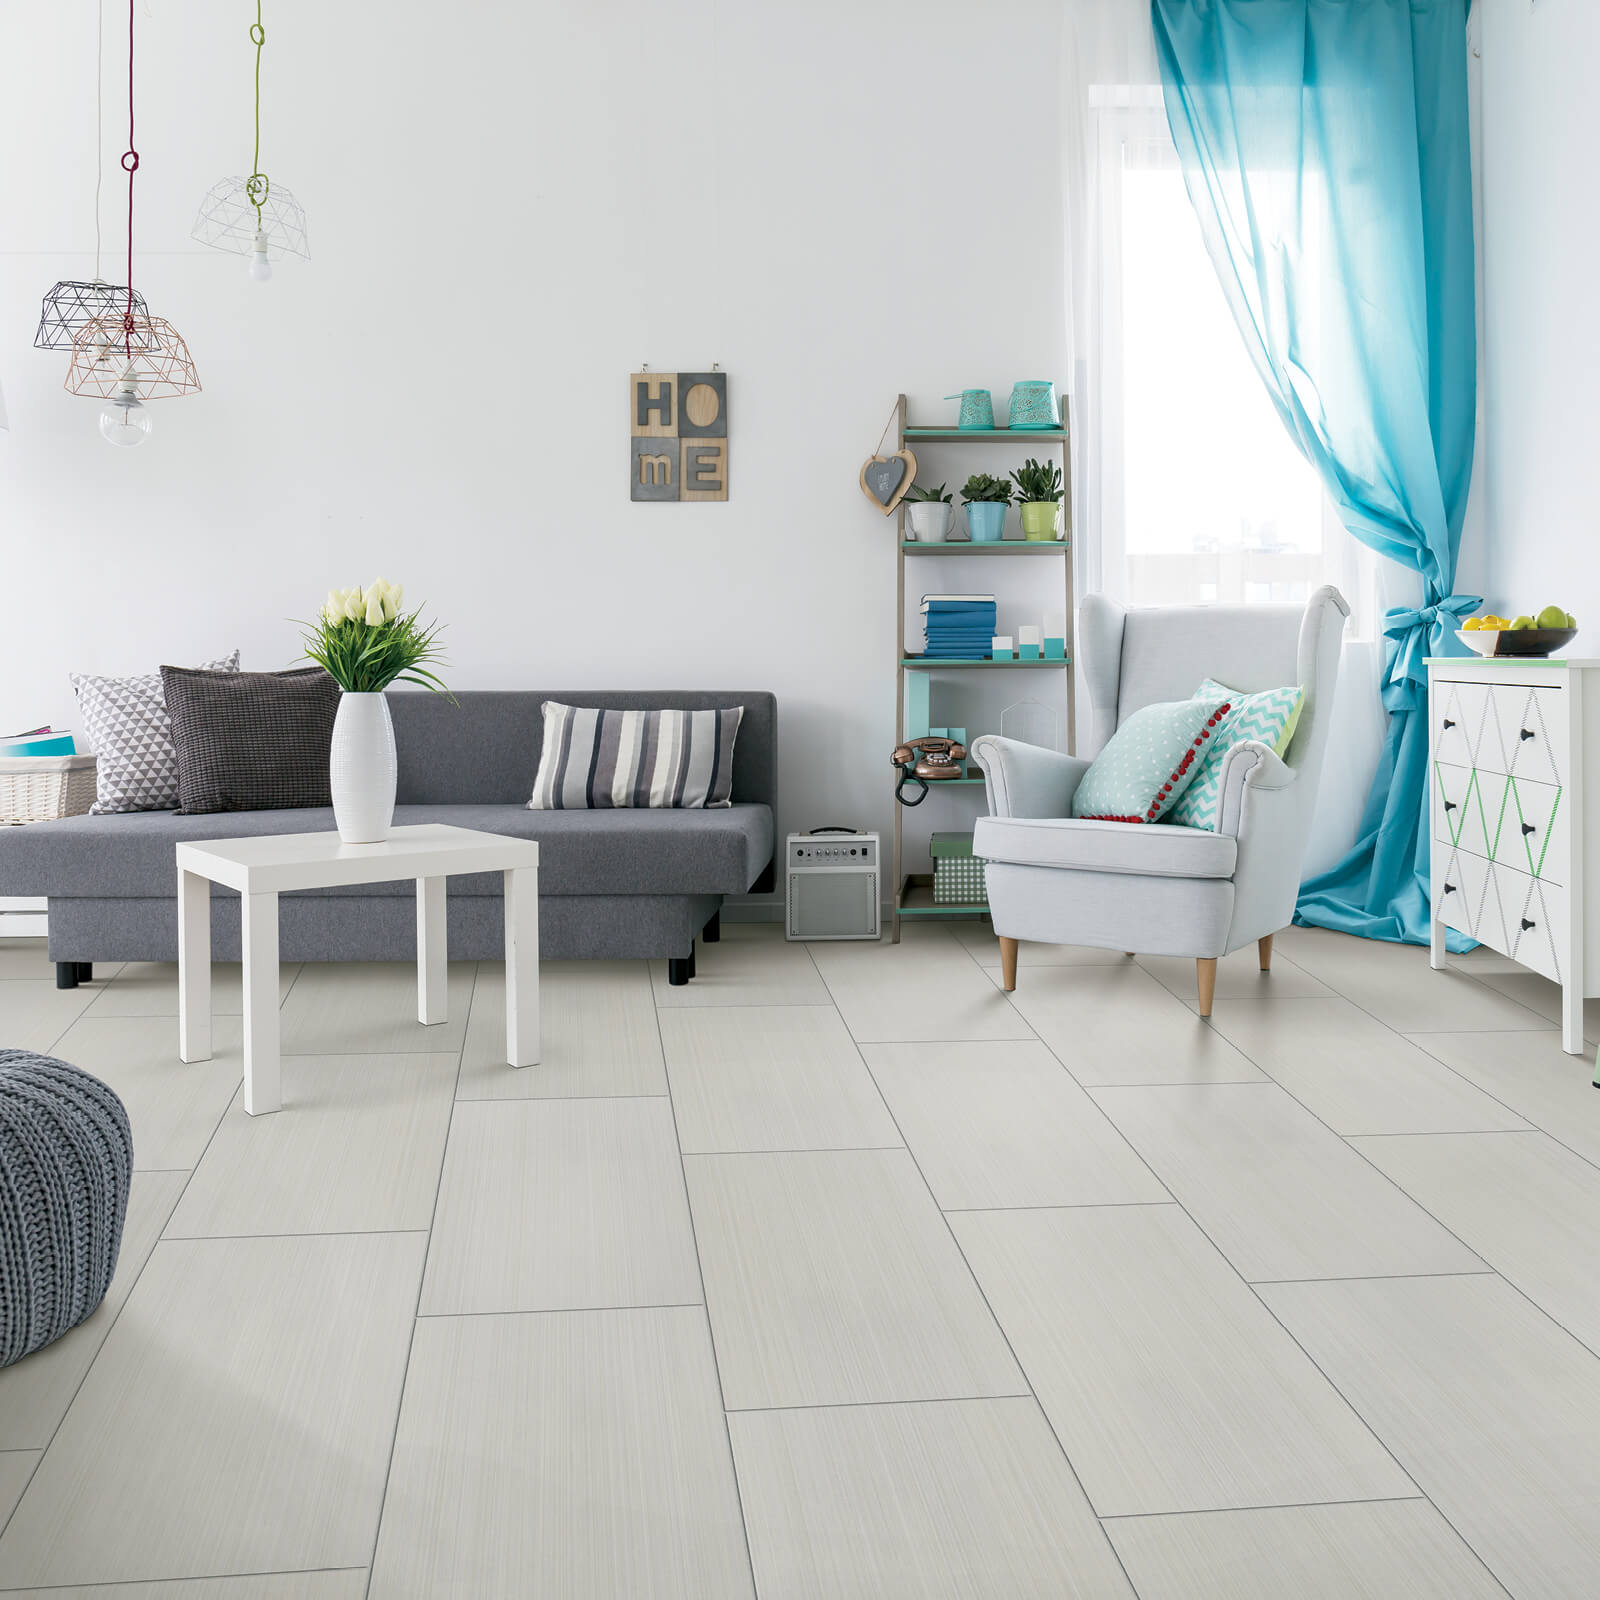 tile in living room | All Floors Design Centre